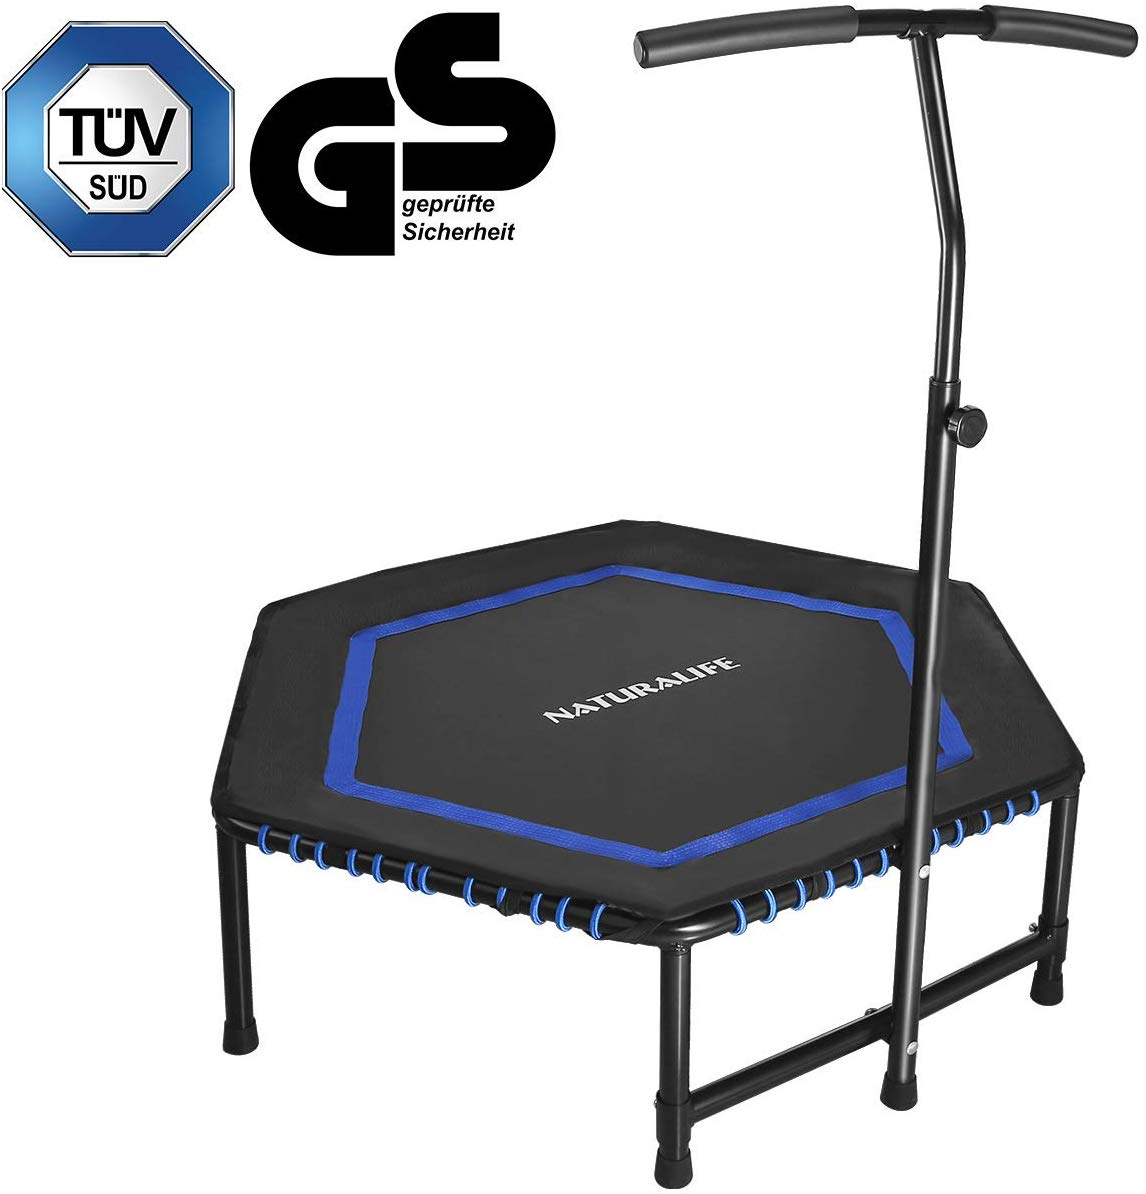 NATURALIFE Mini Trampoline